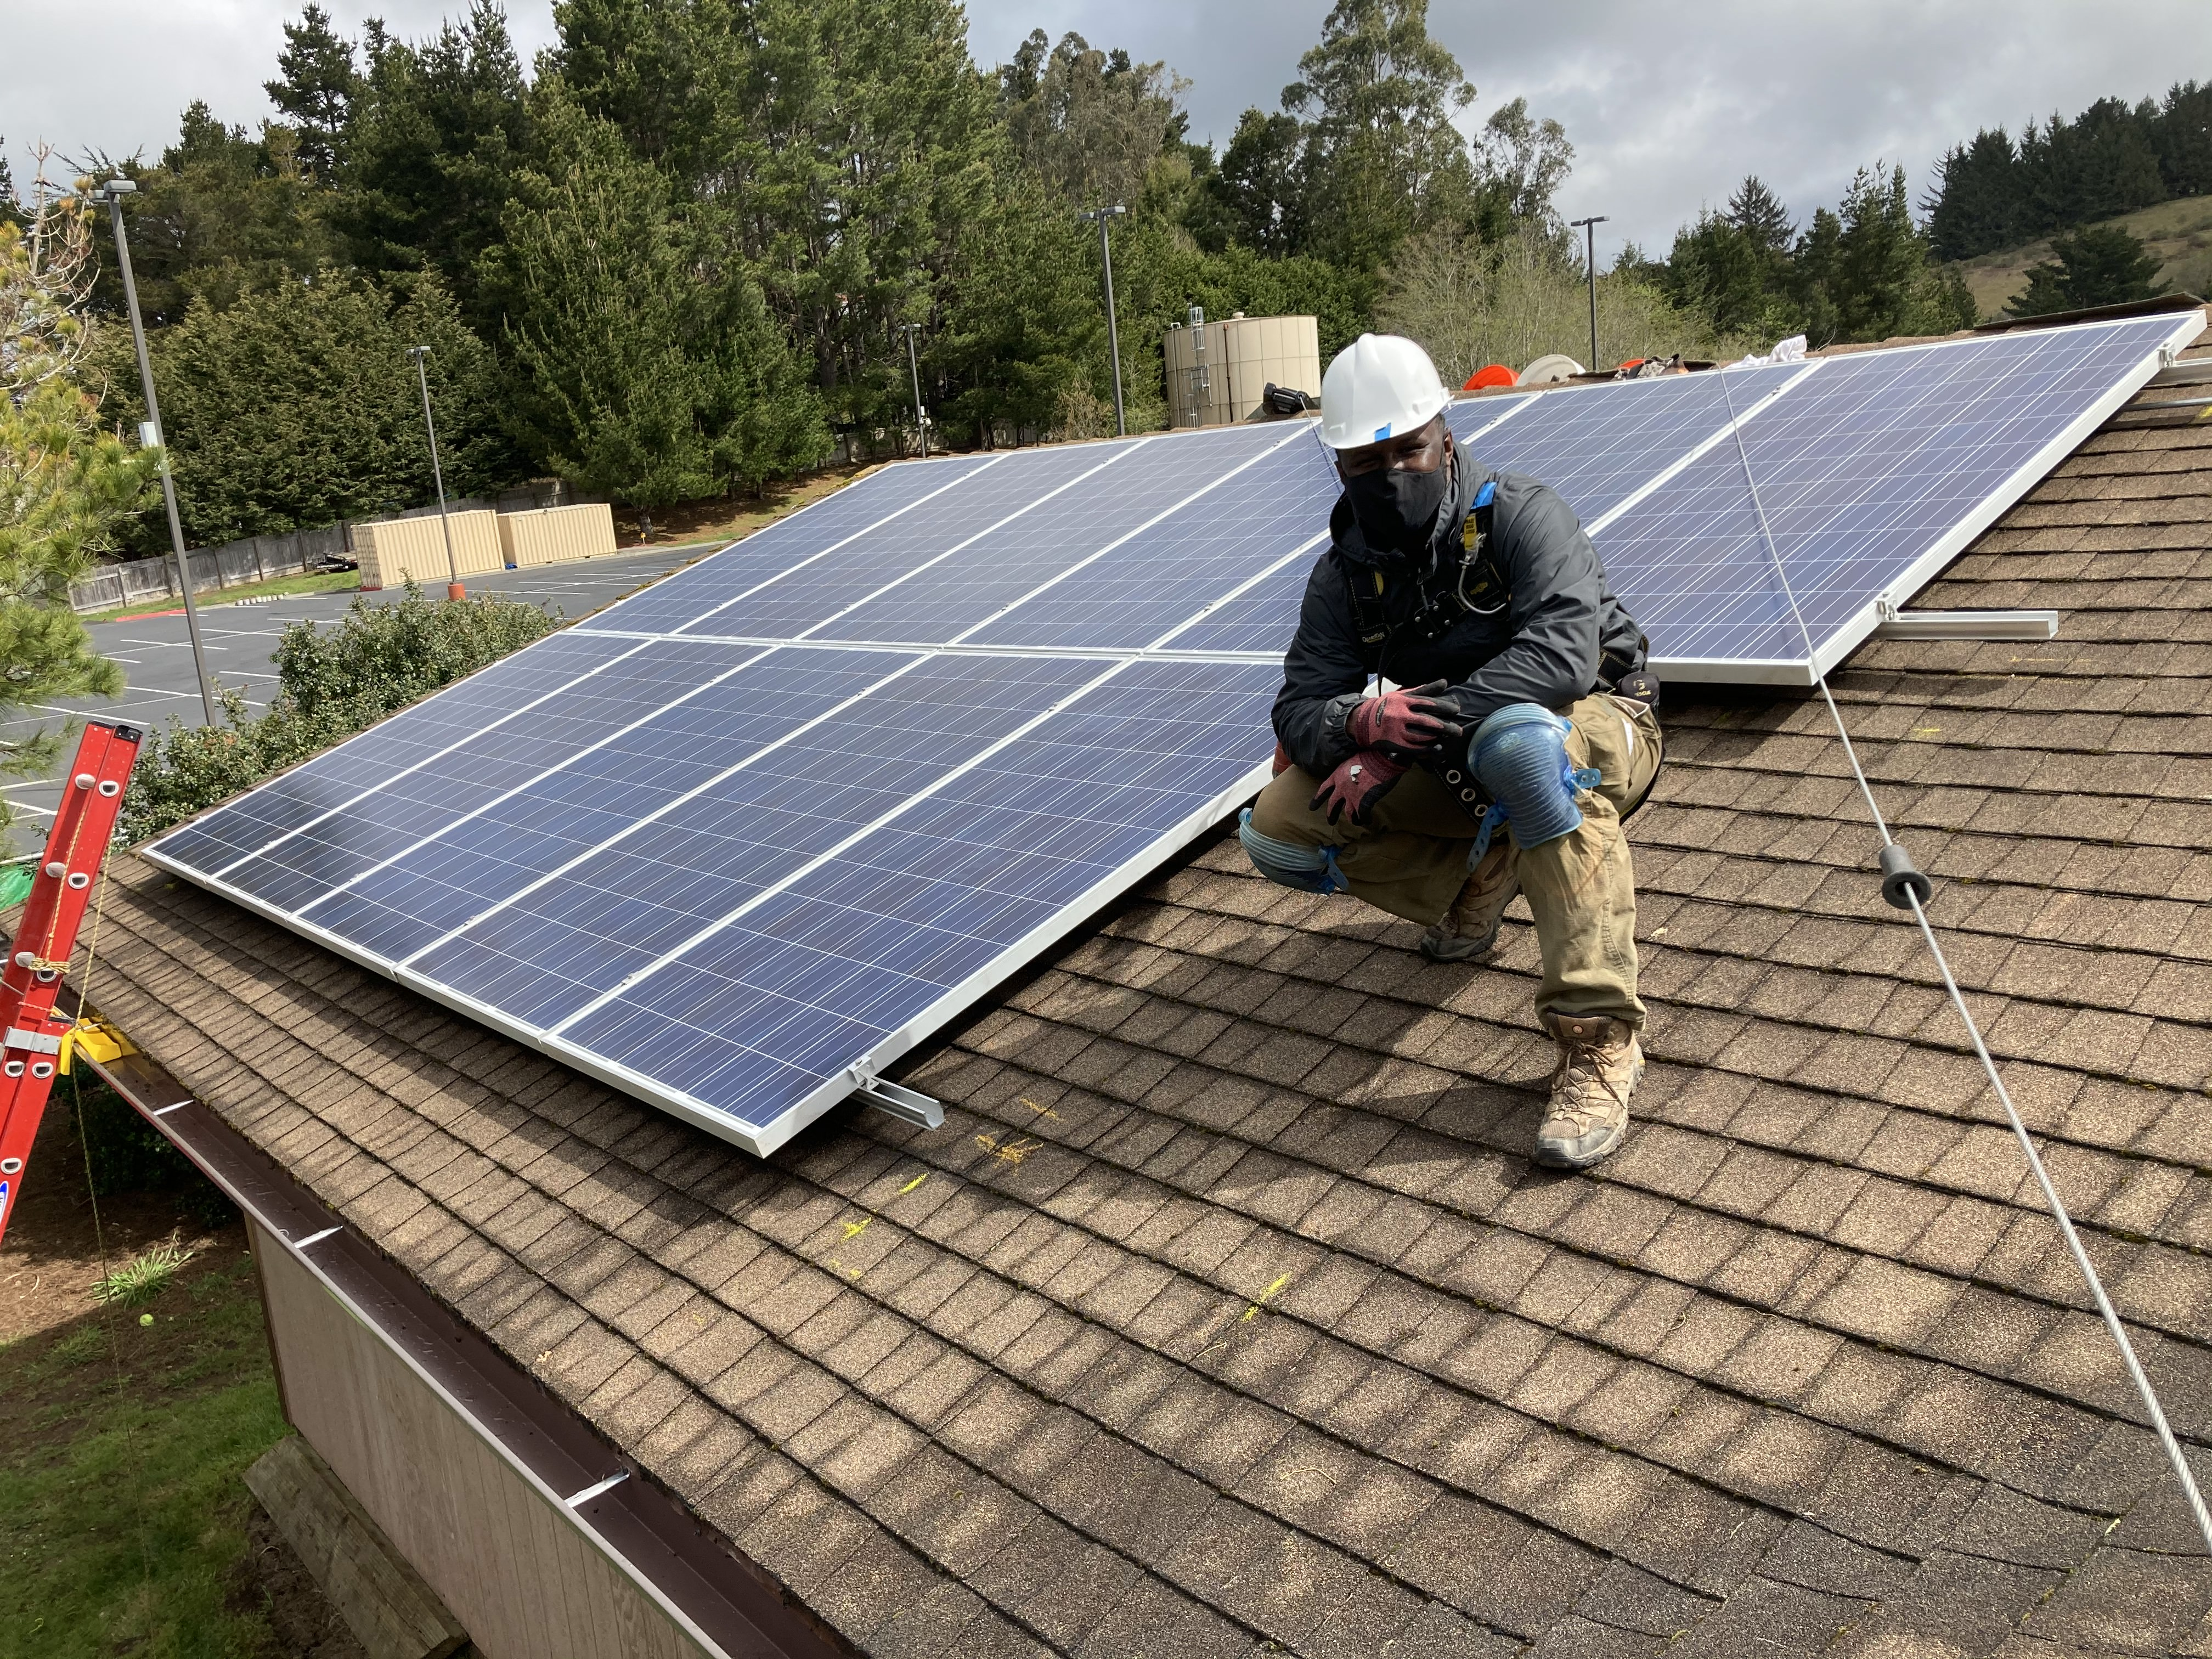 IMG: Garrison Davis poses in front of several solar panels on a roof